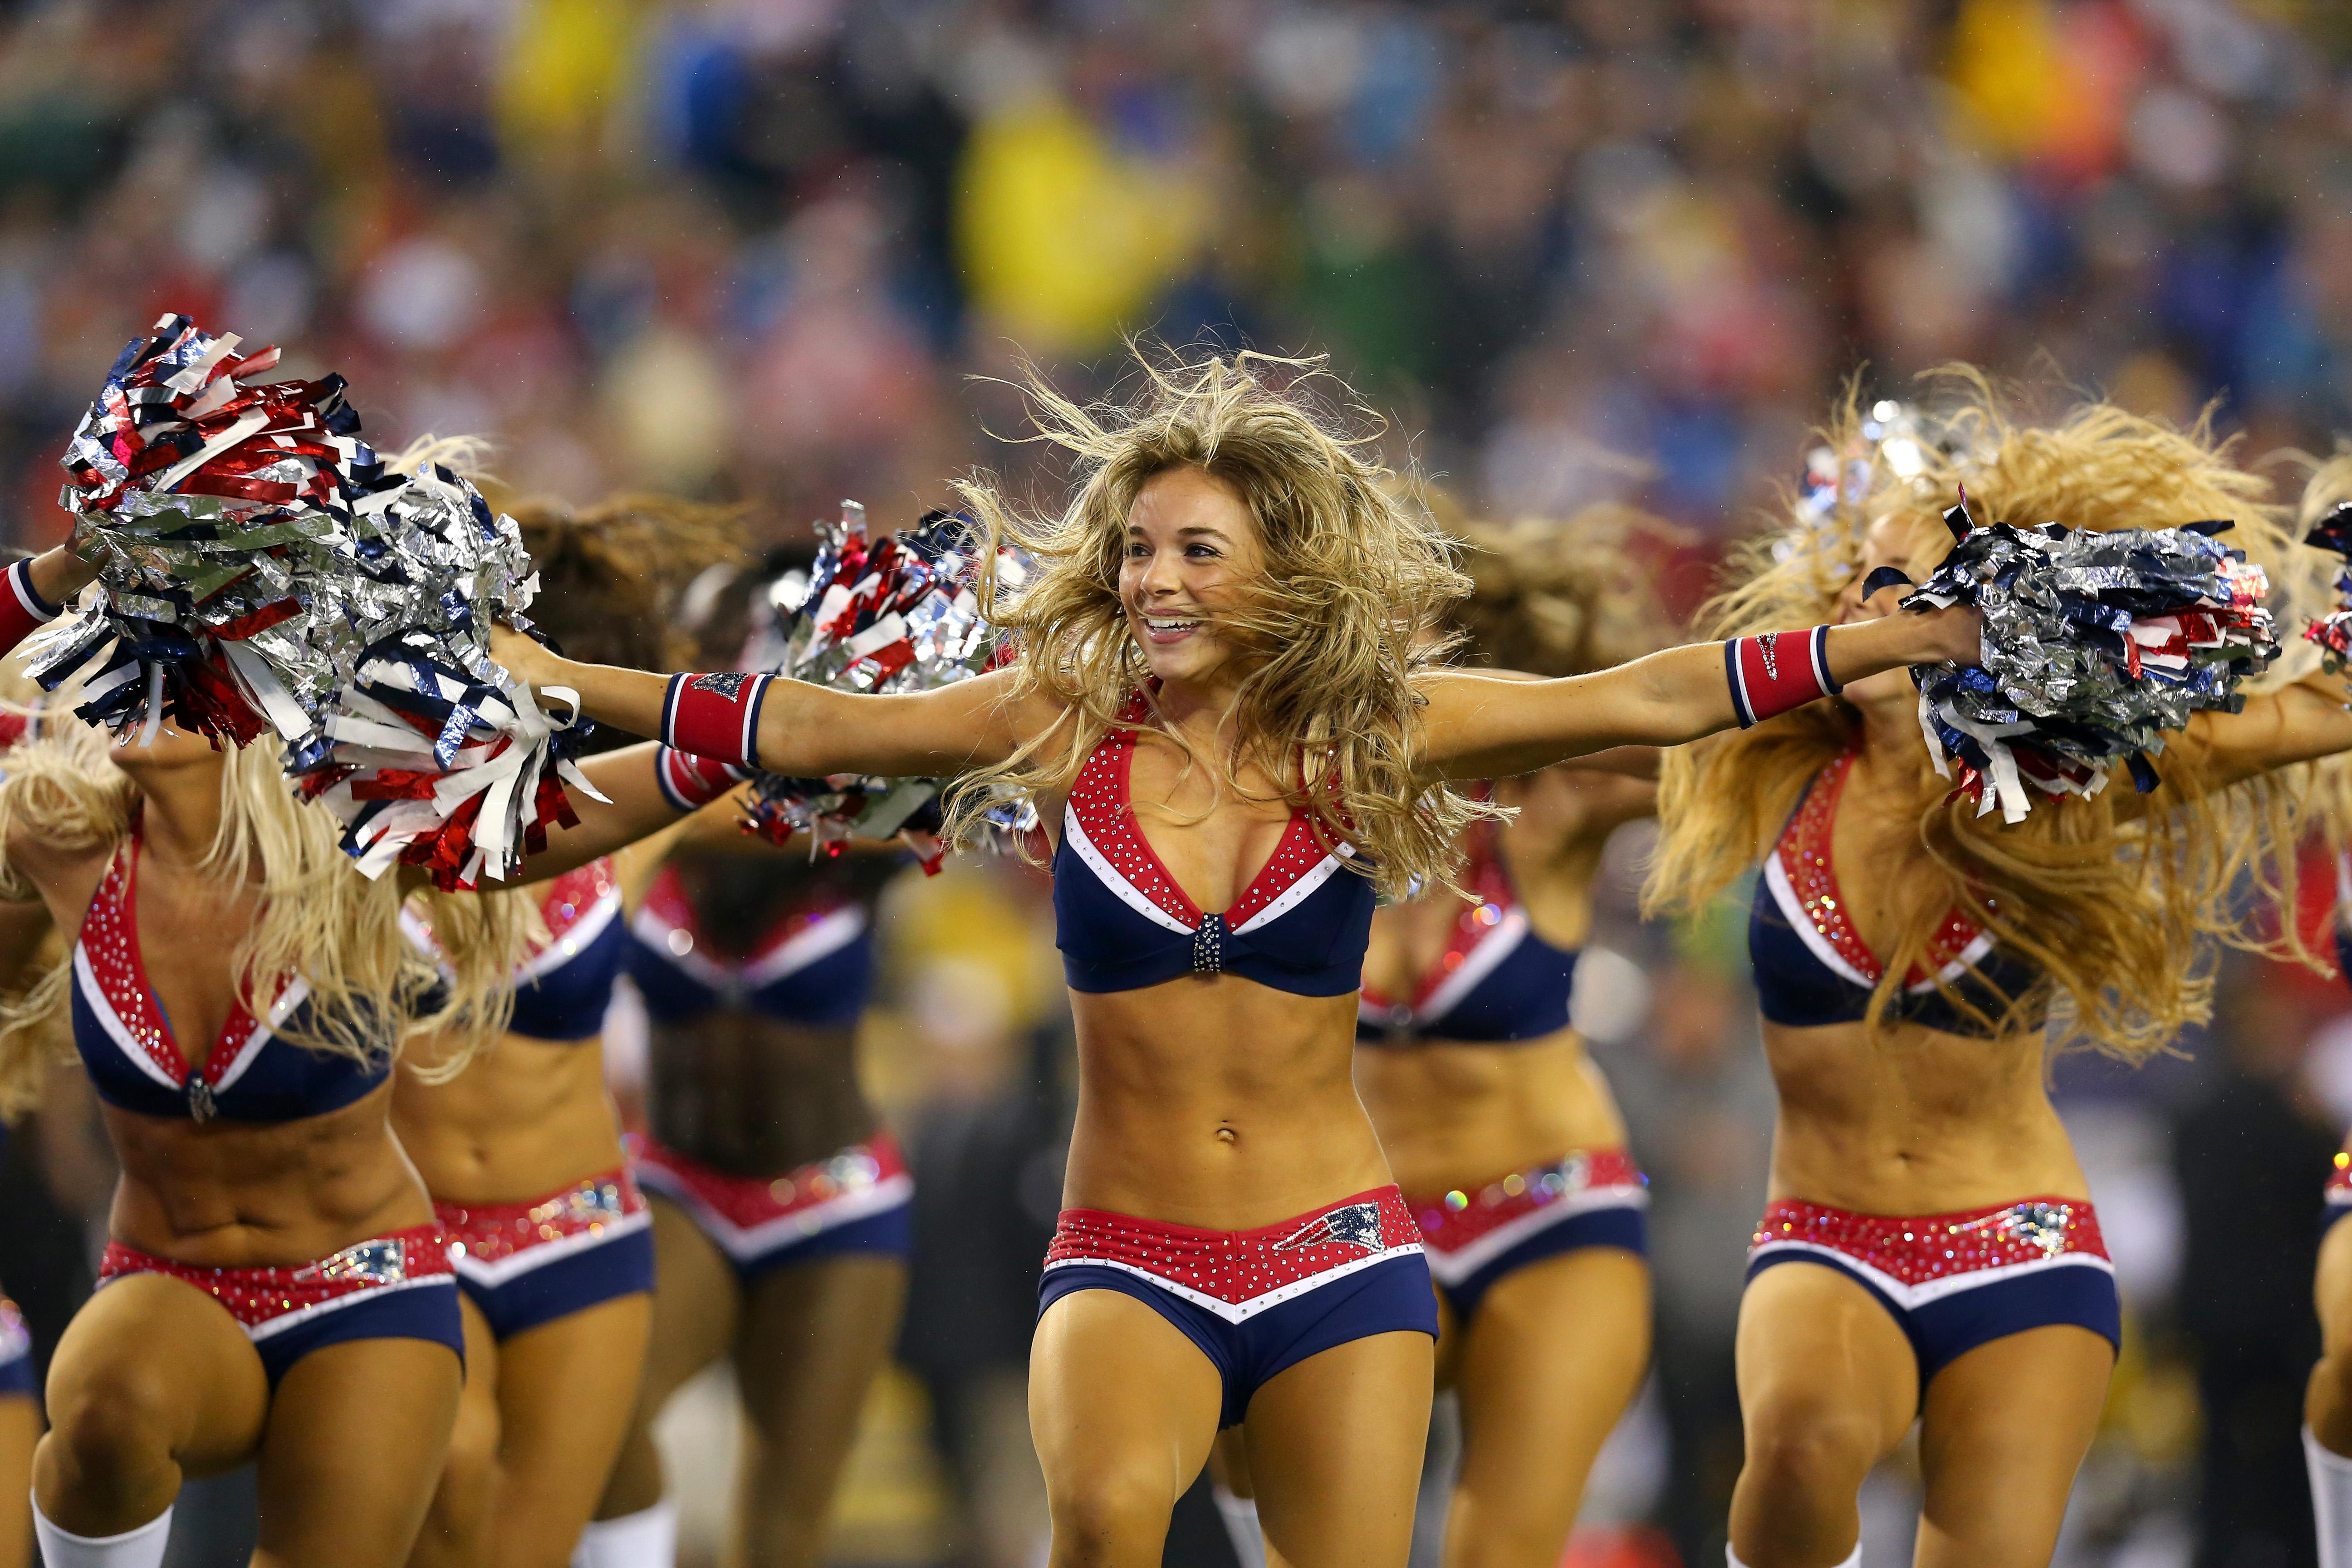 New England Patriots cheerleaders will return to the Super Bowl for the third time in four years